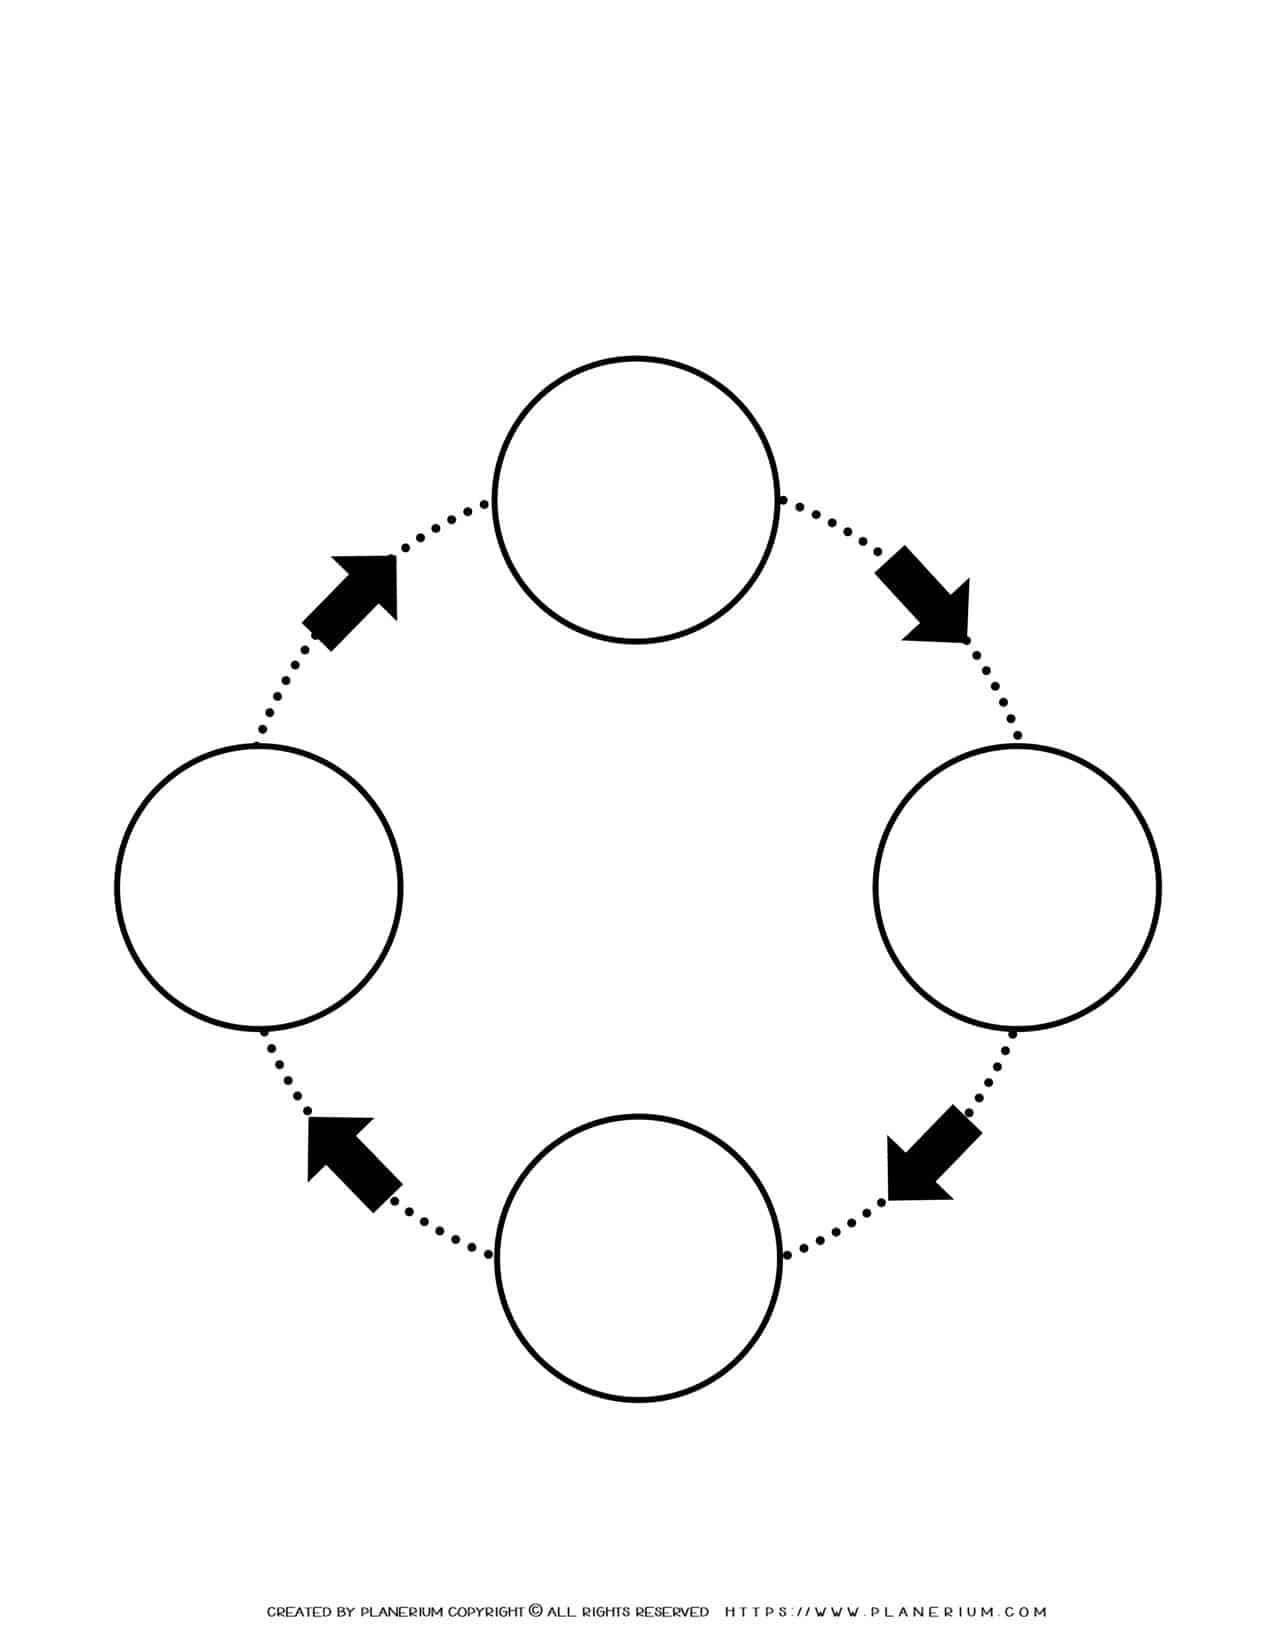 Sequence Chart Template - Four Circles on a Circle with Arrows   Planerium